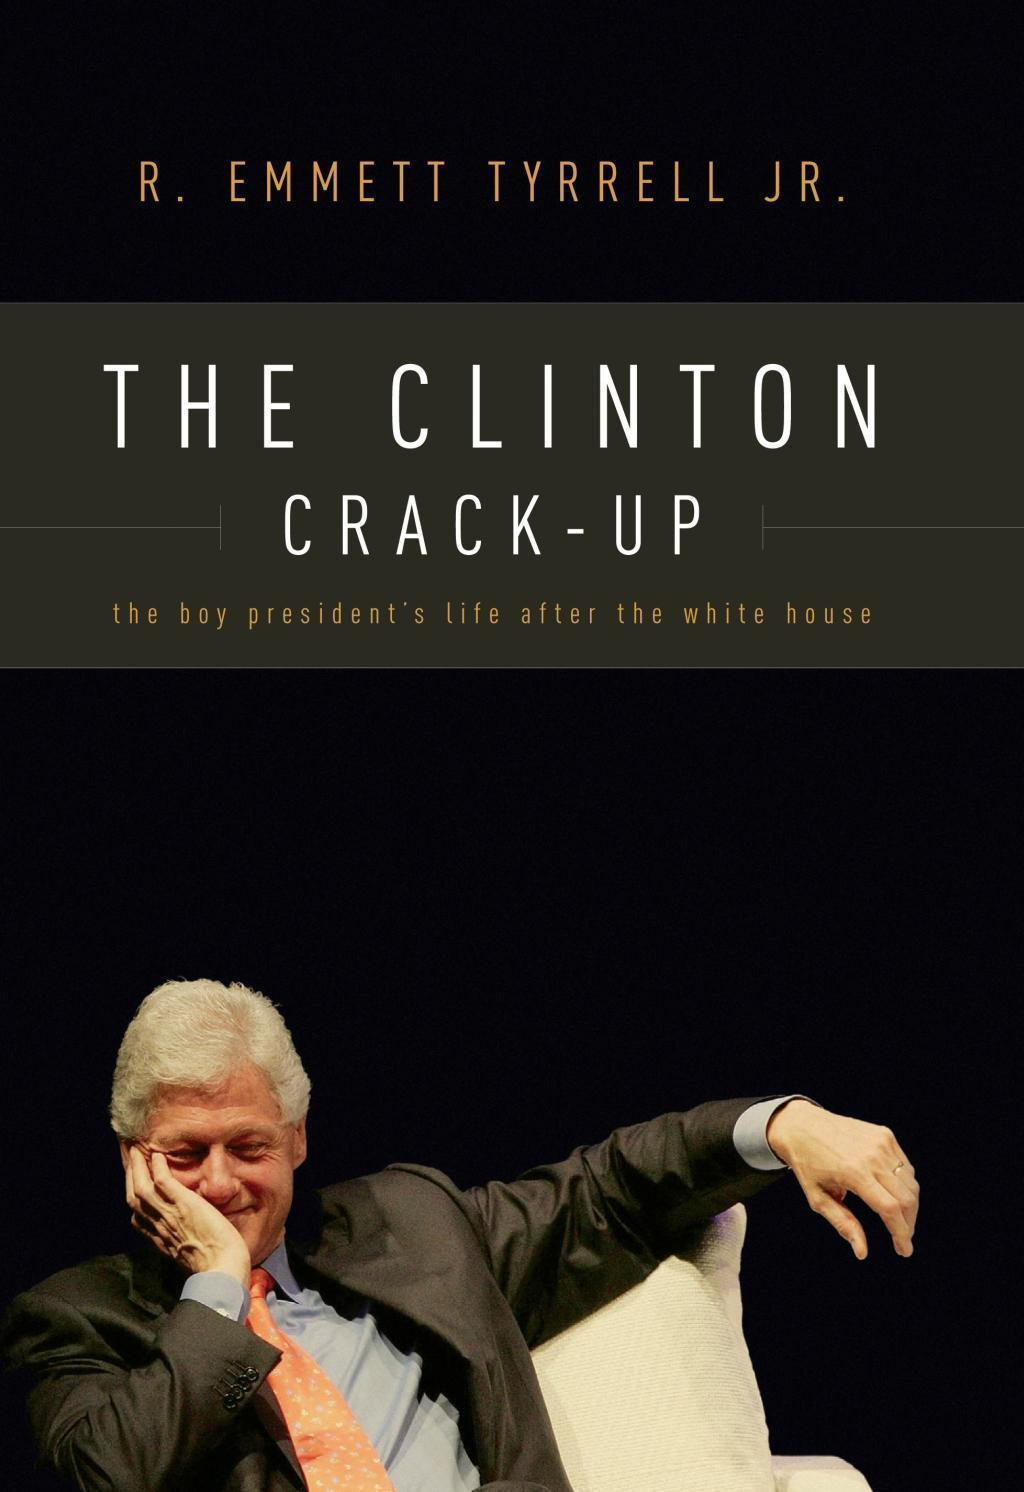 The Clinton Crack-Up